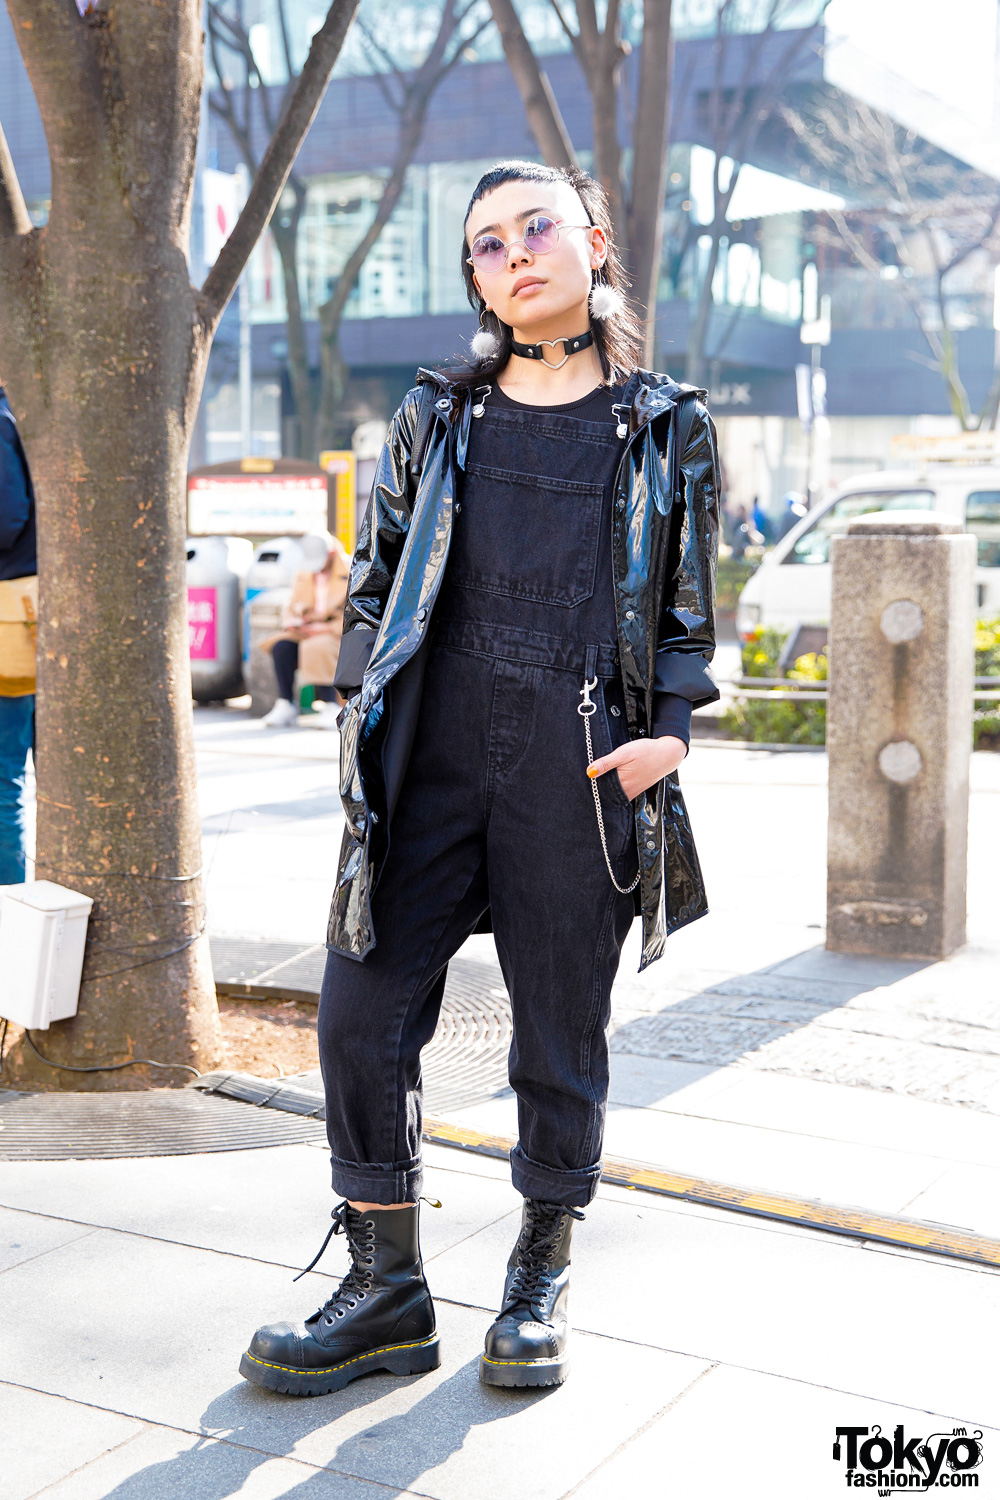 Harajuku Street Style w/ Shaved Hairstyle, Heart Choker, Vinyl Jacket & Dr. Martens Boots